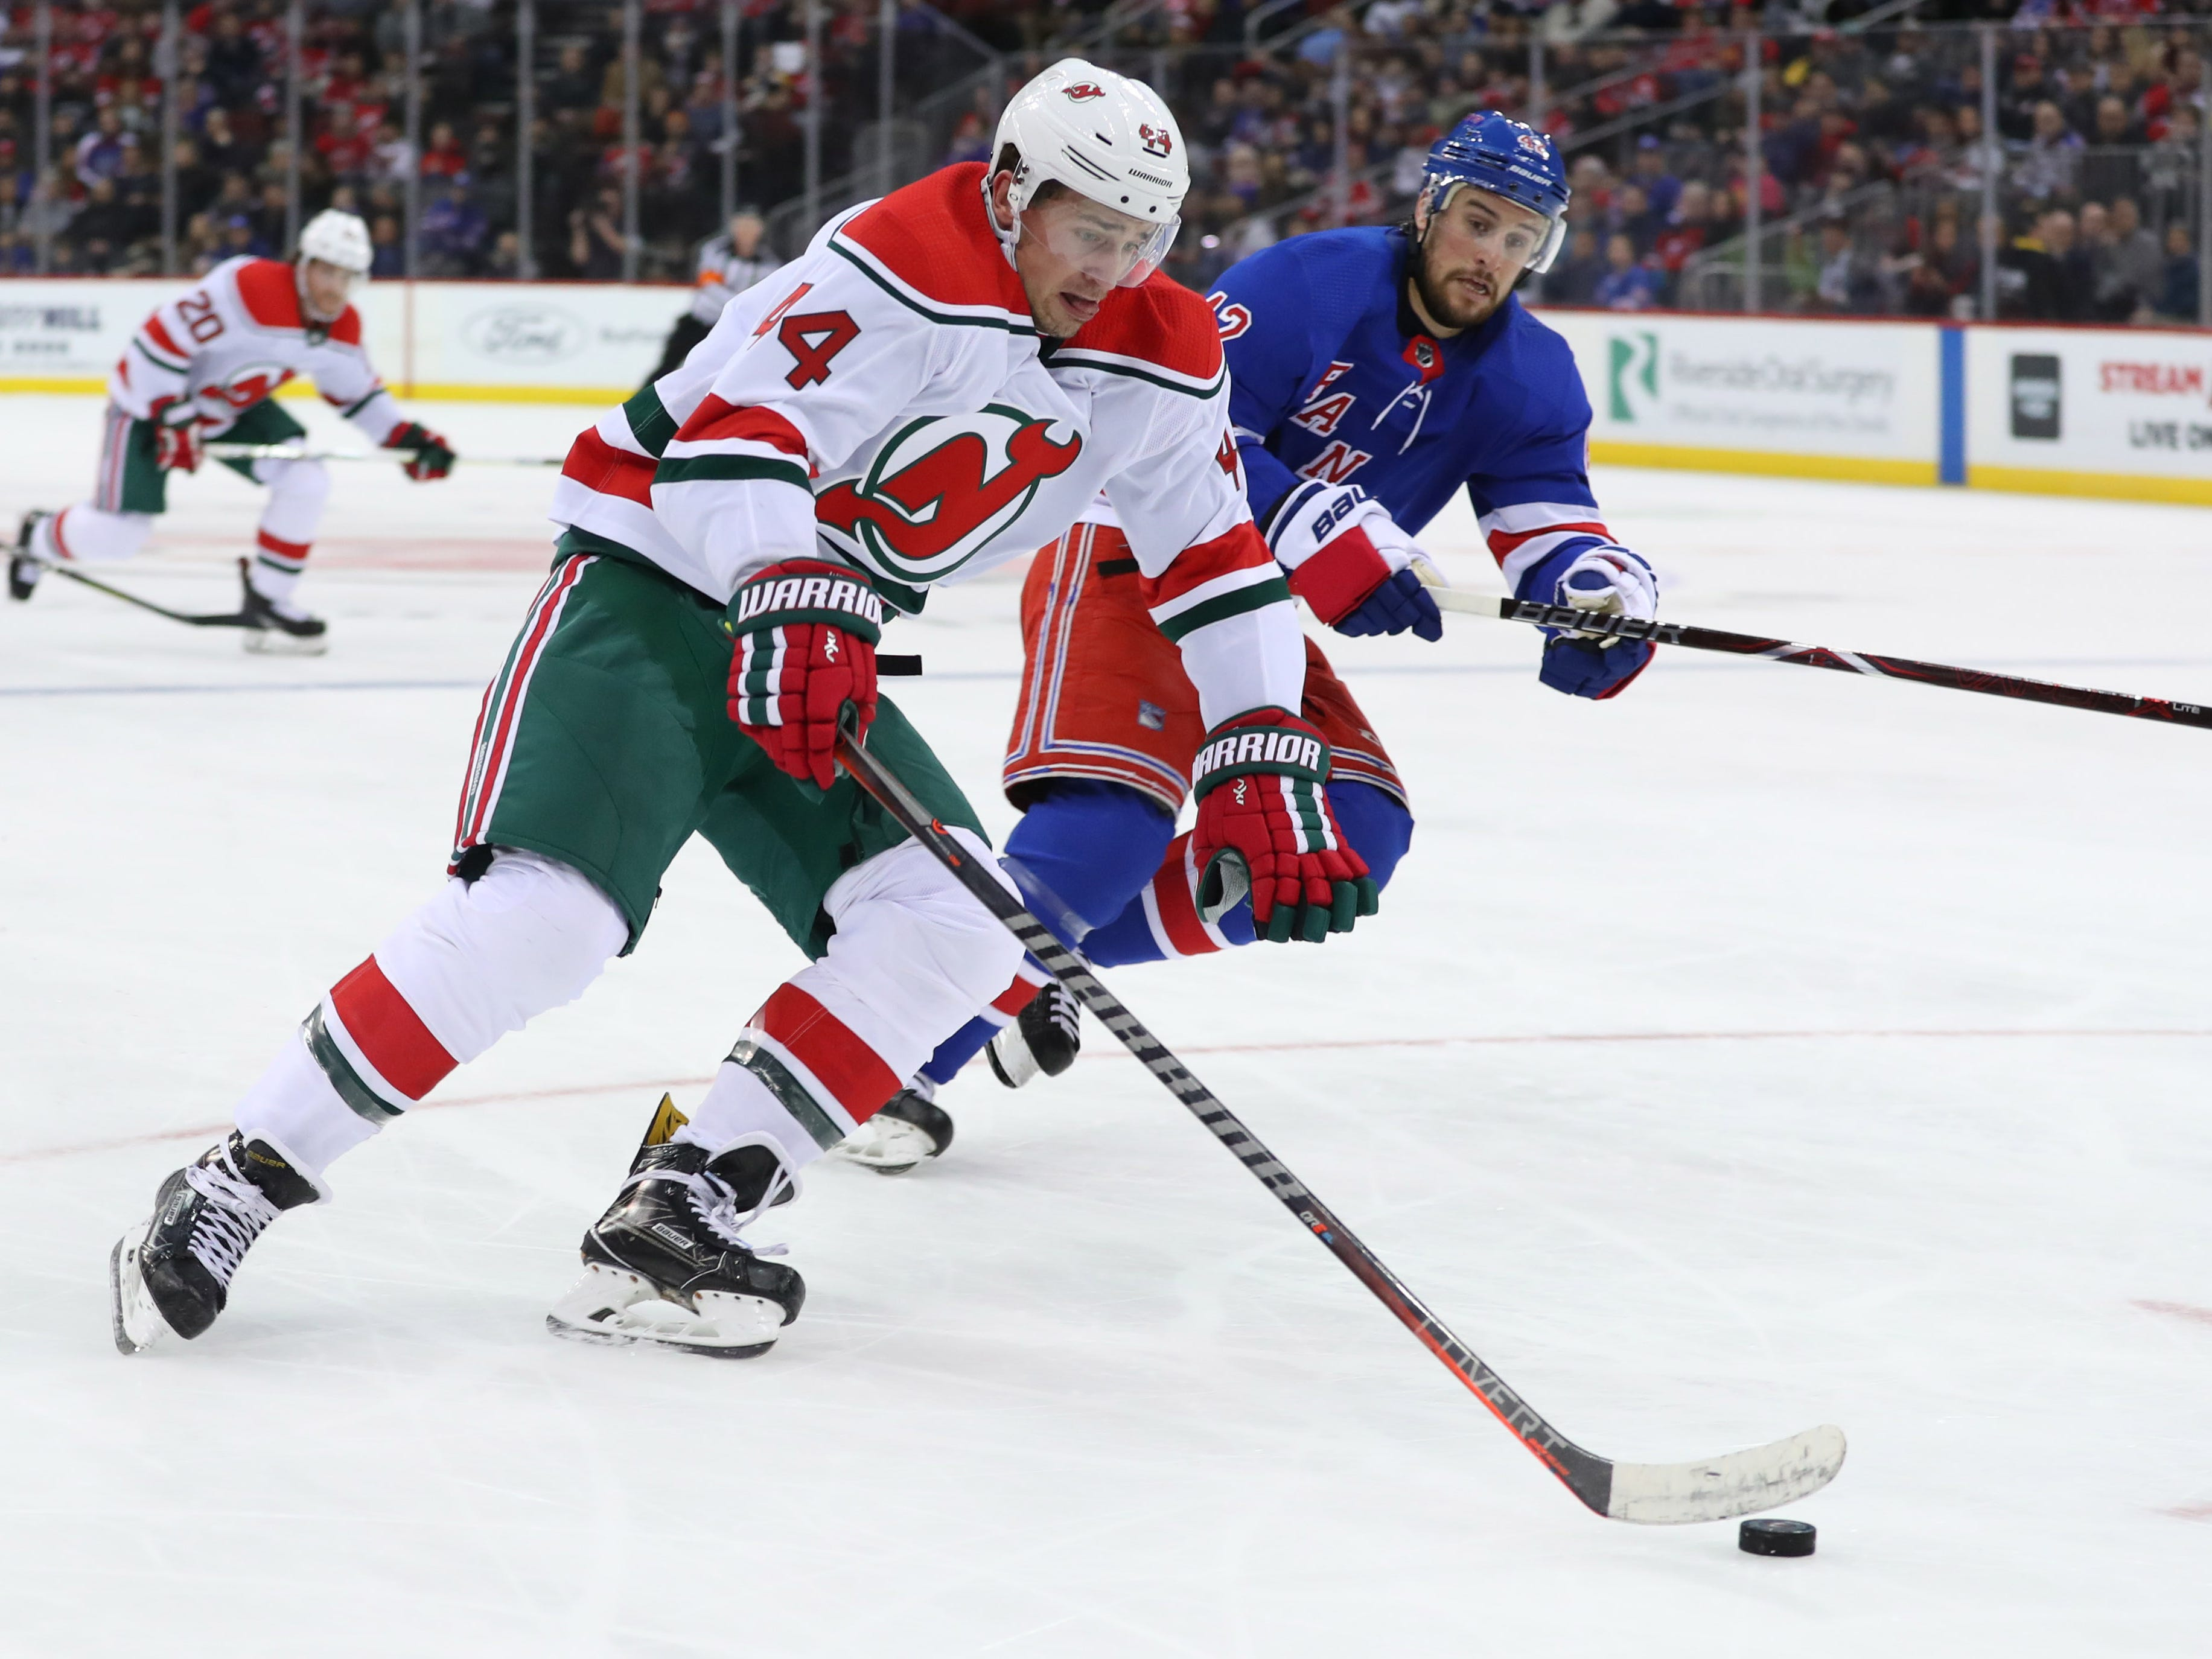 Jan 31, 2019; Newark, NJ, USA; New Jersey Devils left wing Miles Wood (44) skates with the puck while being defended by New York Rangers defenseman Brendan Smith (42) during the second period at Prudential Center.